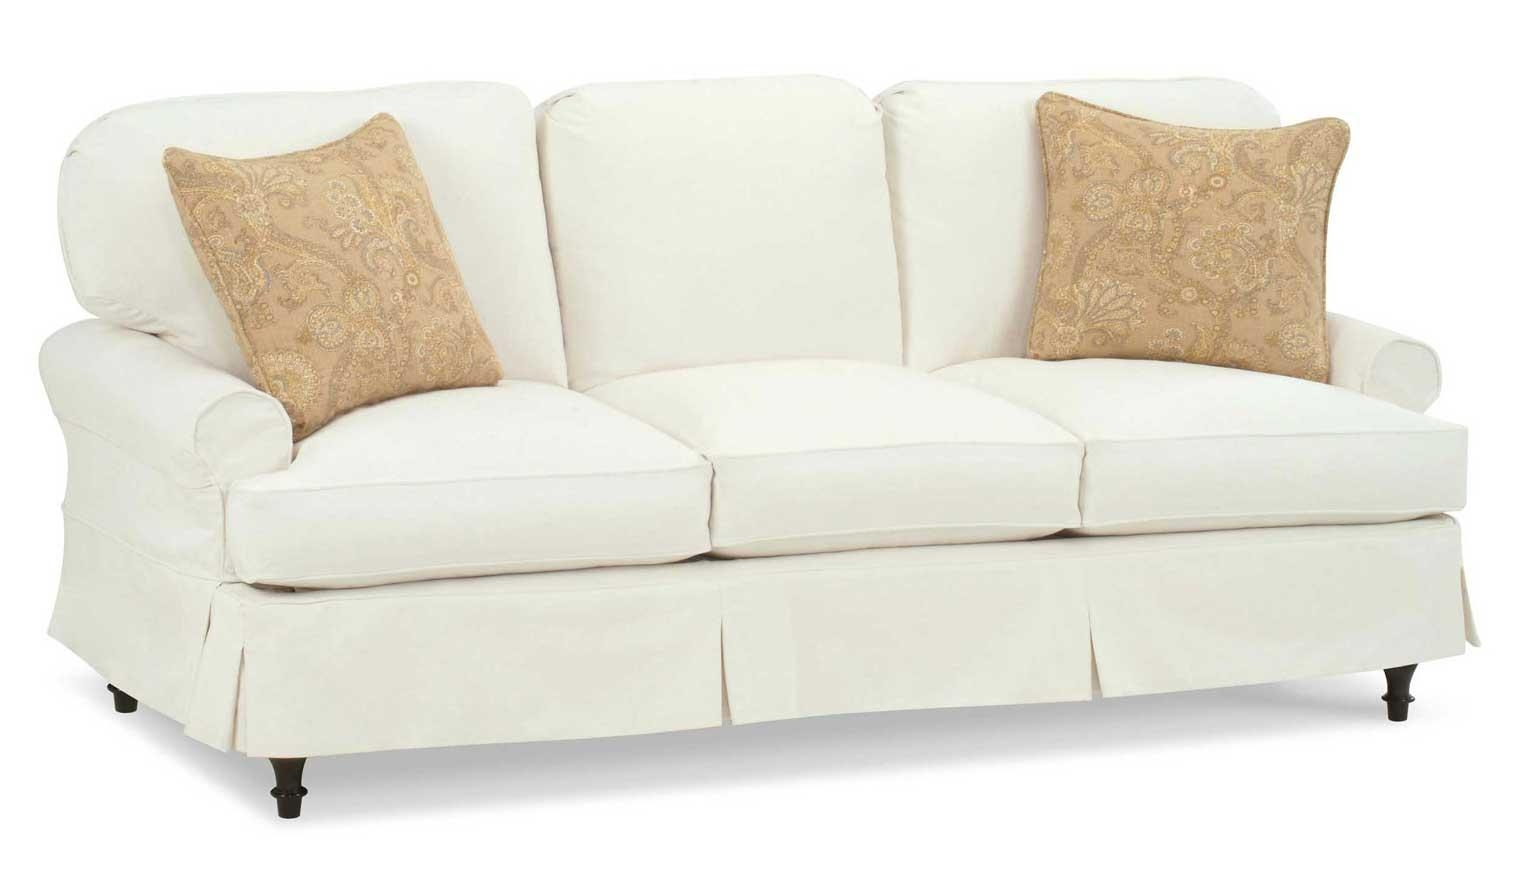 Farmhouse And Country Furniture   Cottage Home® Throughout Cottage Style Sofas And Chairs (View 15 of 20)